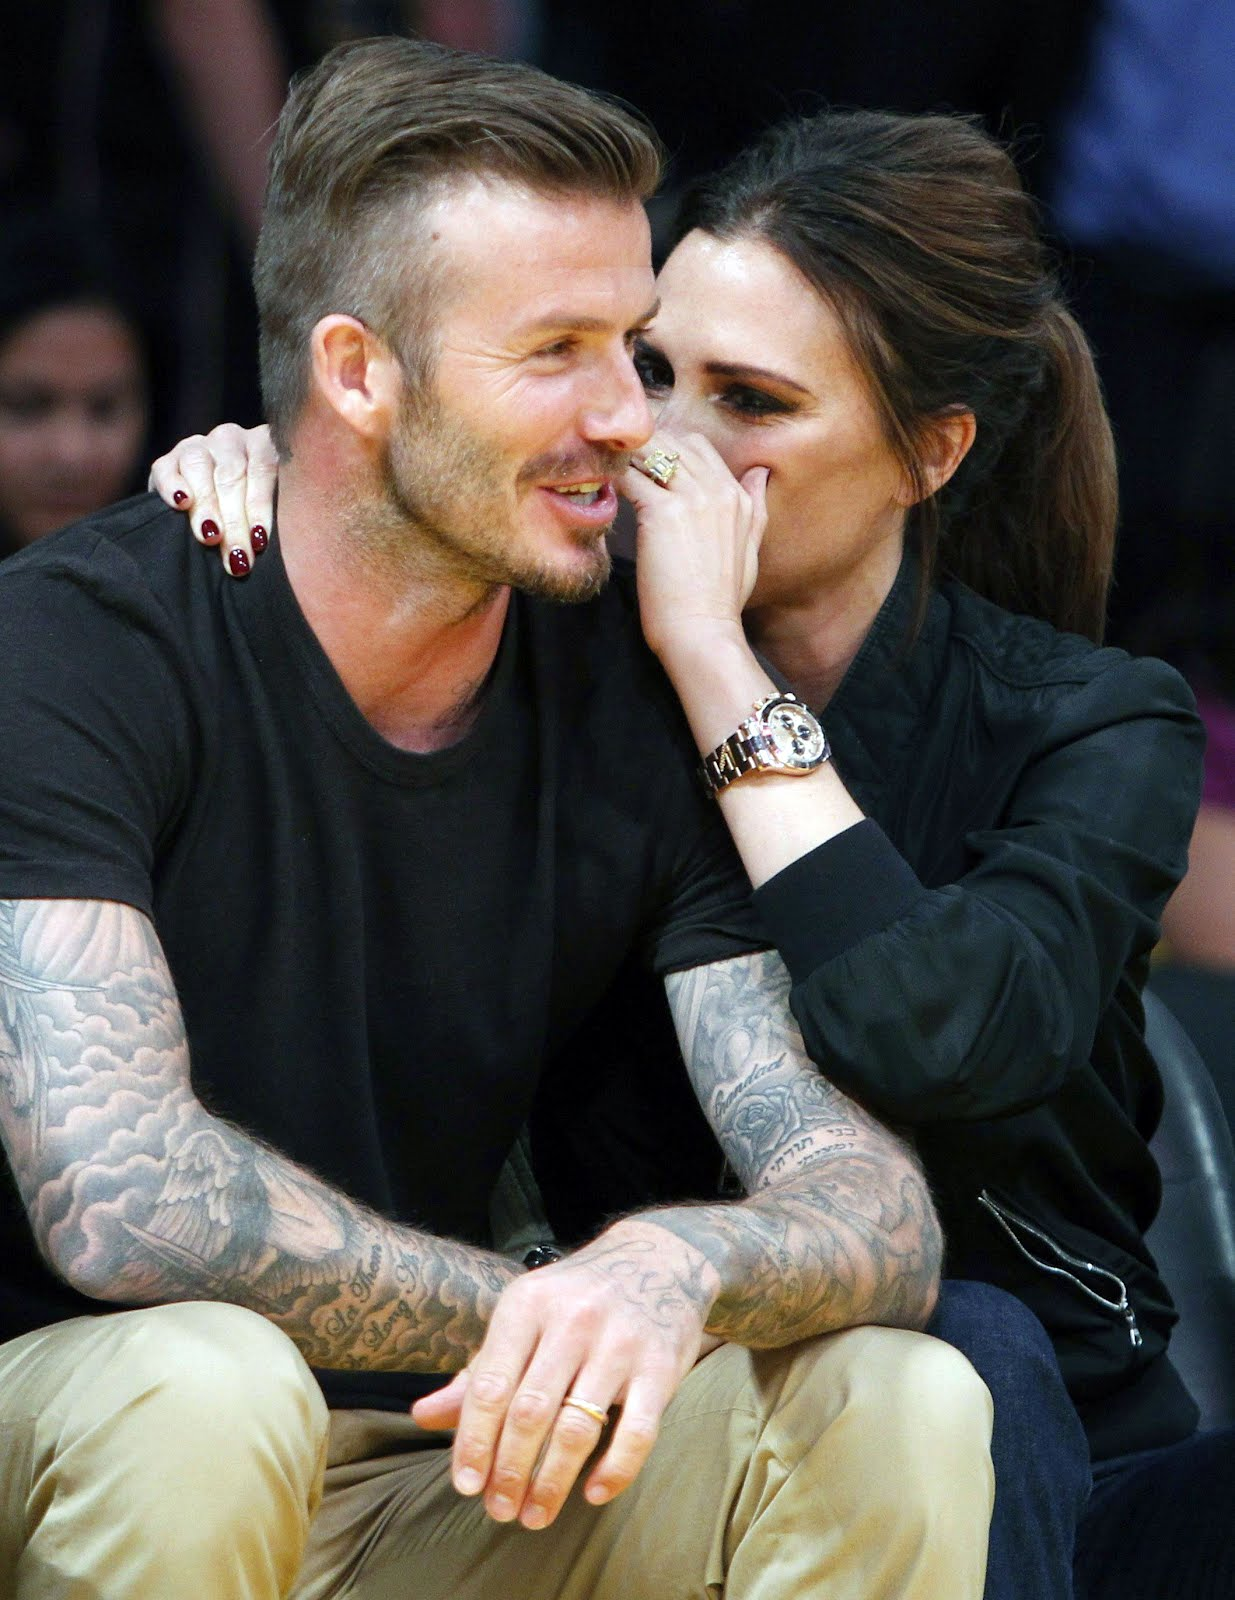 http://1.bp.blogspot.com/-gTLwMwETFR8/T6T7Ou0swVI/AAAAAAAAPzM/rXBL-CHa3jY/s1600/David-and-Victoria-Beckham-Rolex-DEEPSEA-at-LA-Lakers-Game.jpg